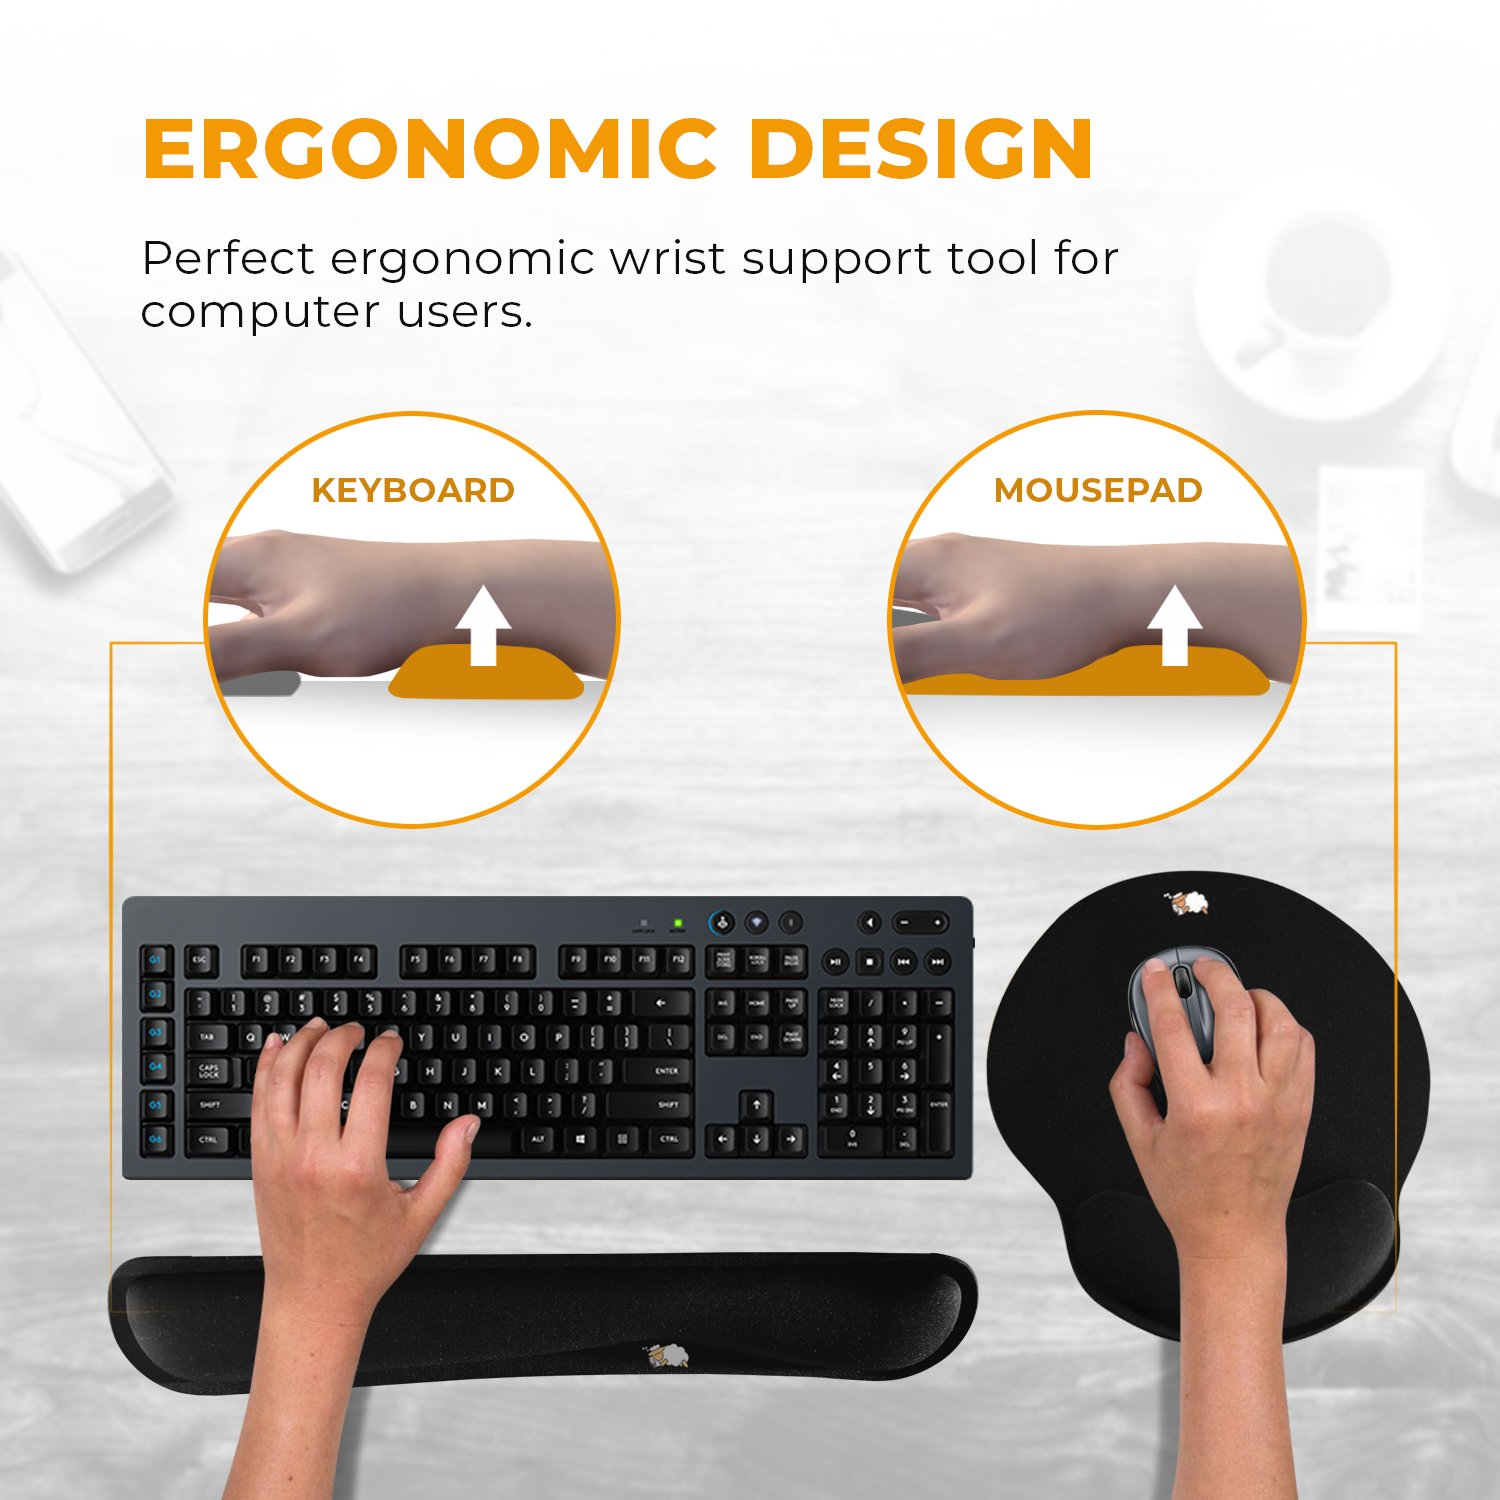 Provides Comfort and Support to Hands While Typing Made of Foam That Is Built to Last 3 Years Warranty by CushionCare Ergonomic Support CushionCare Keyboard Wrist Rest Pad Mouse Pad Included